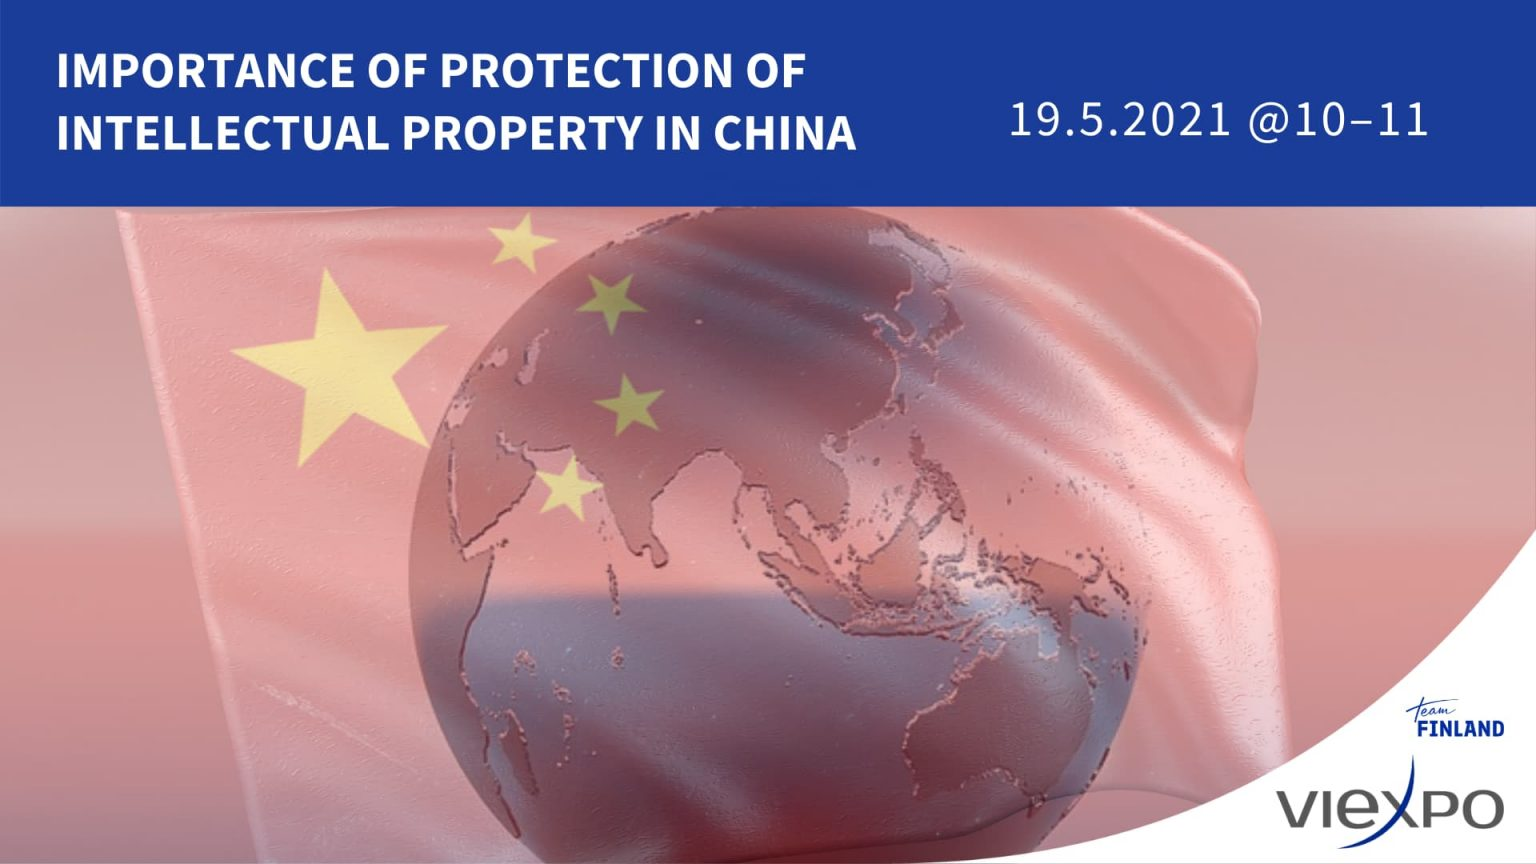 Importance of protection of intellectual property in China